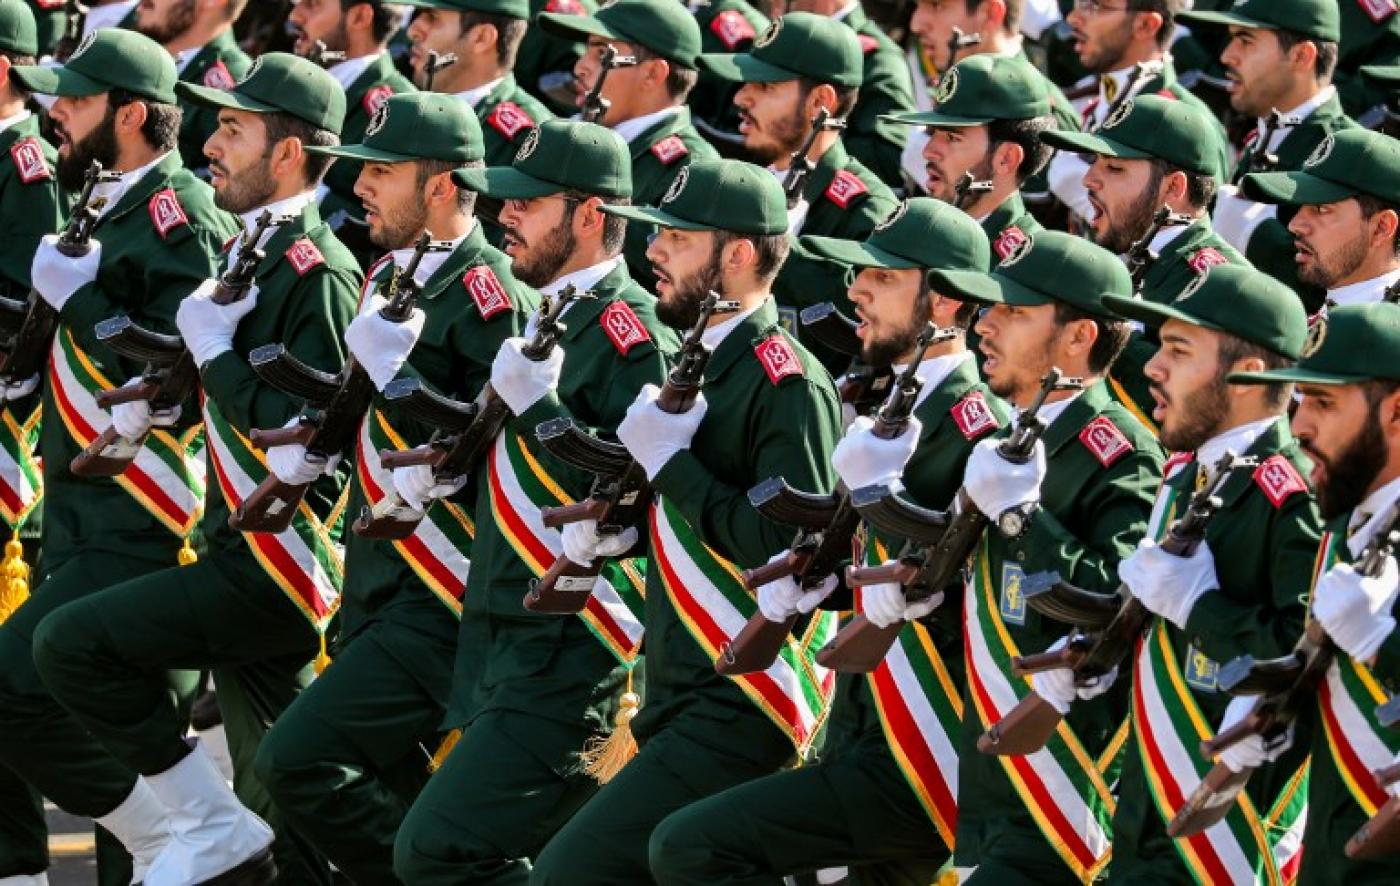 One guard dead, 5 hurt in attack on Iran revolution anniversary